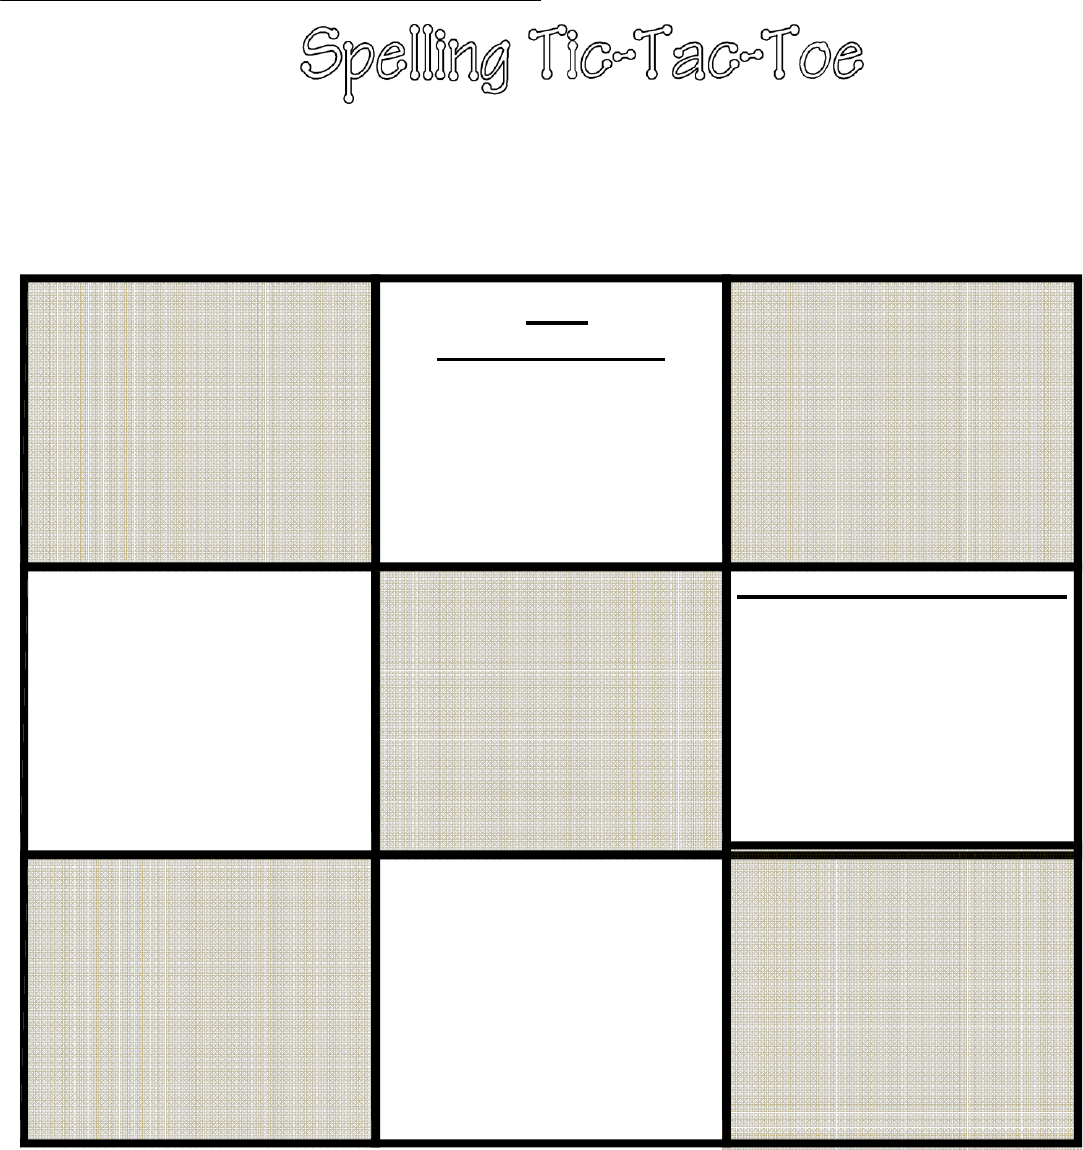 67A Tic Tac Toe Template | Wiring Library In Tic Tac Toe Template Word